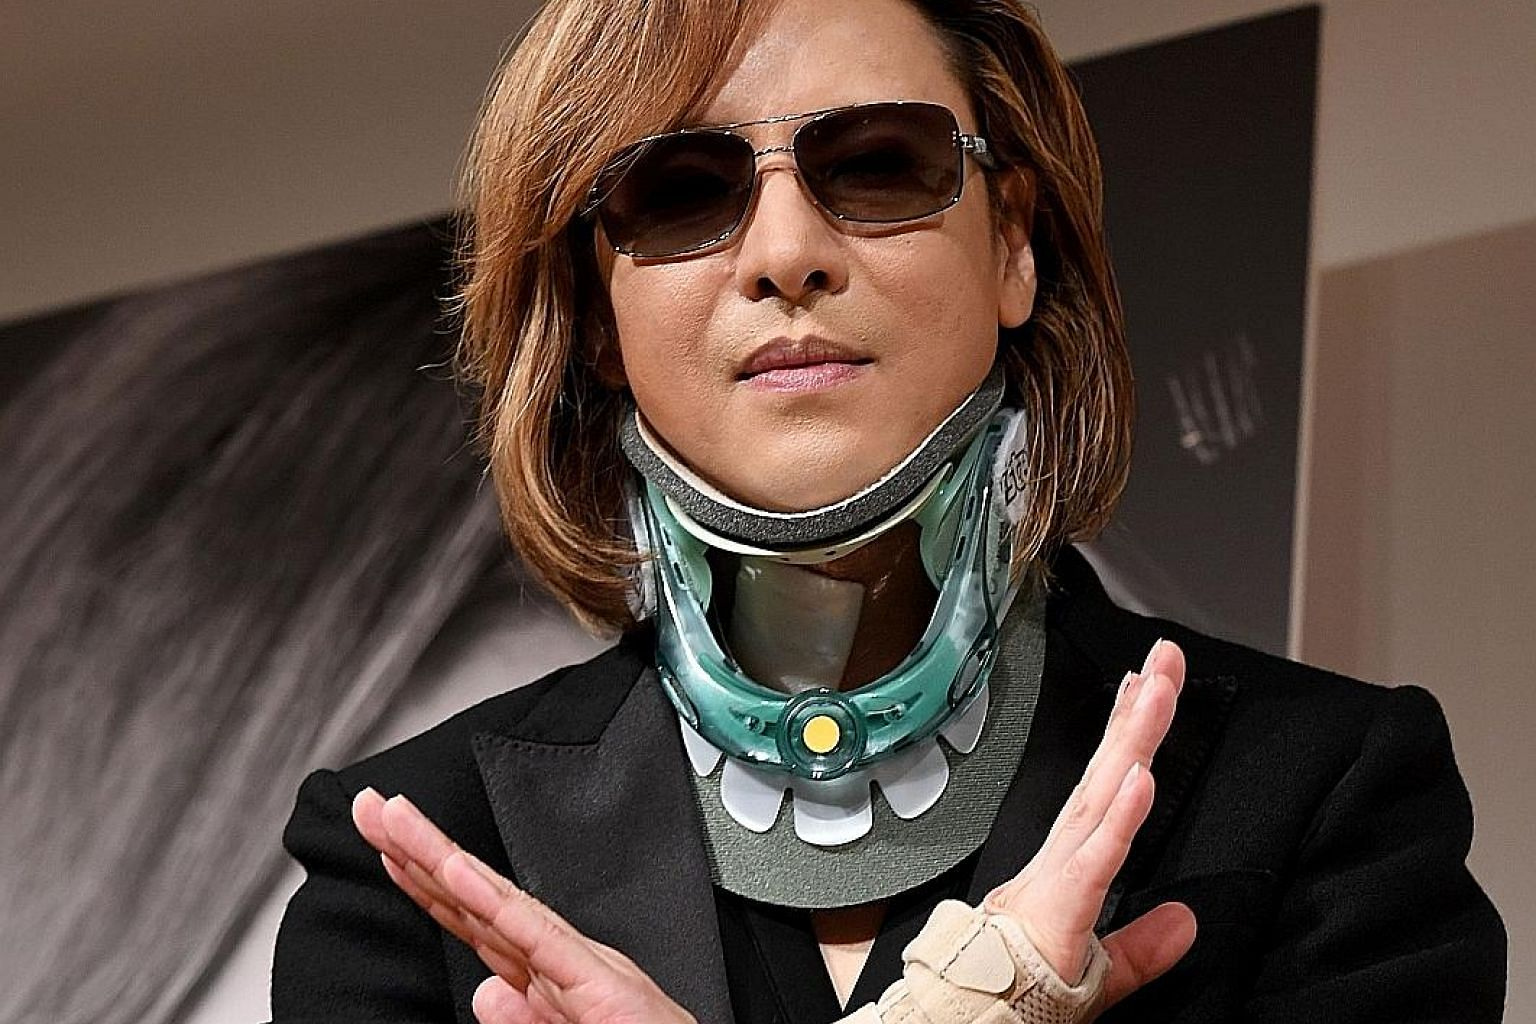 Yoshiki in a neck brace on Tuesday at his first press conference since emergency surgery to implant an artificial cervical disc.